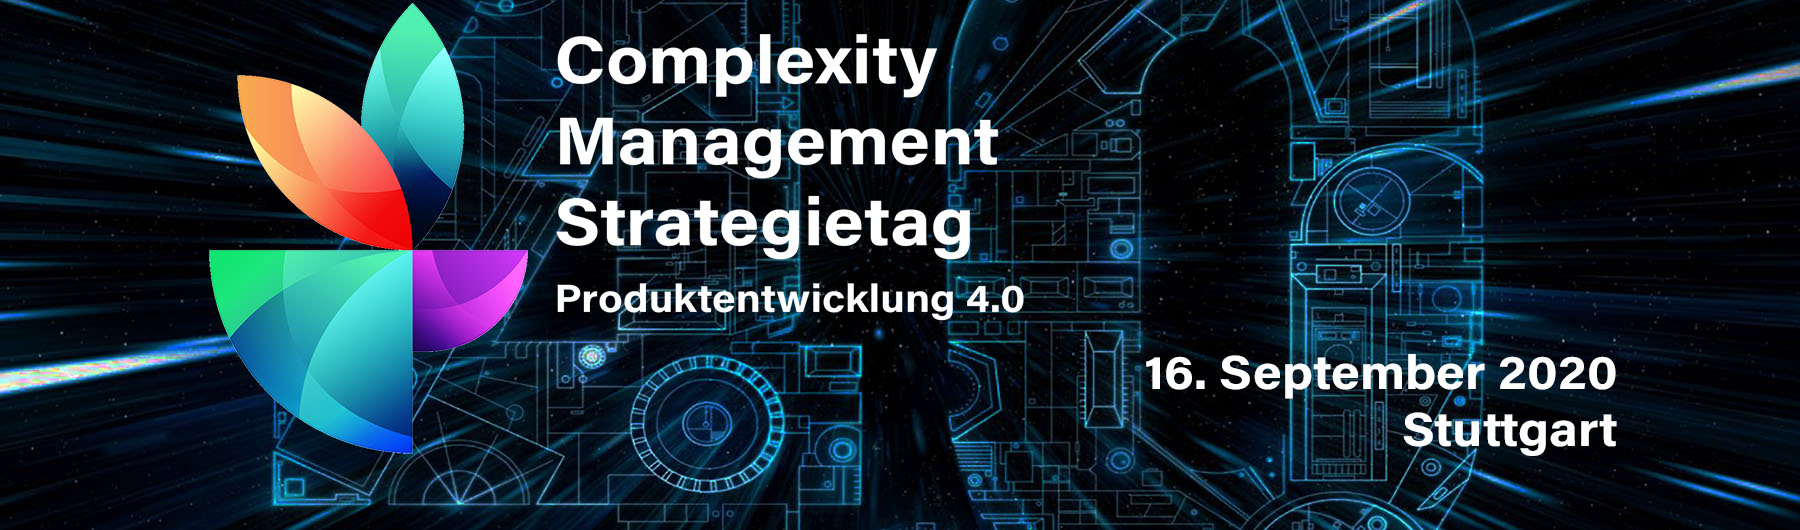 Complexity Management Strategietag